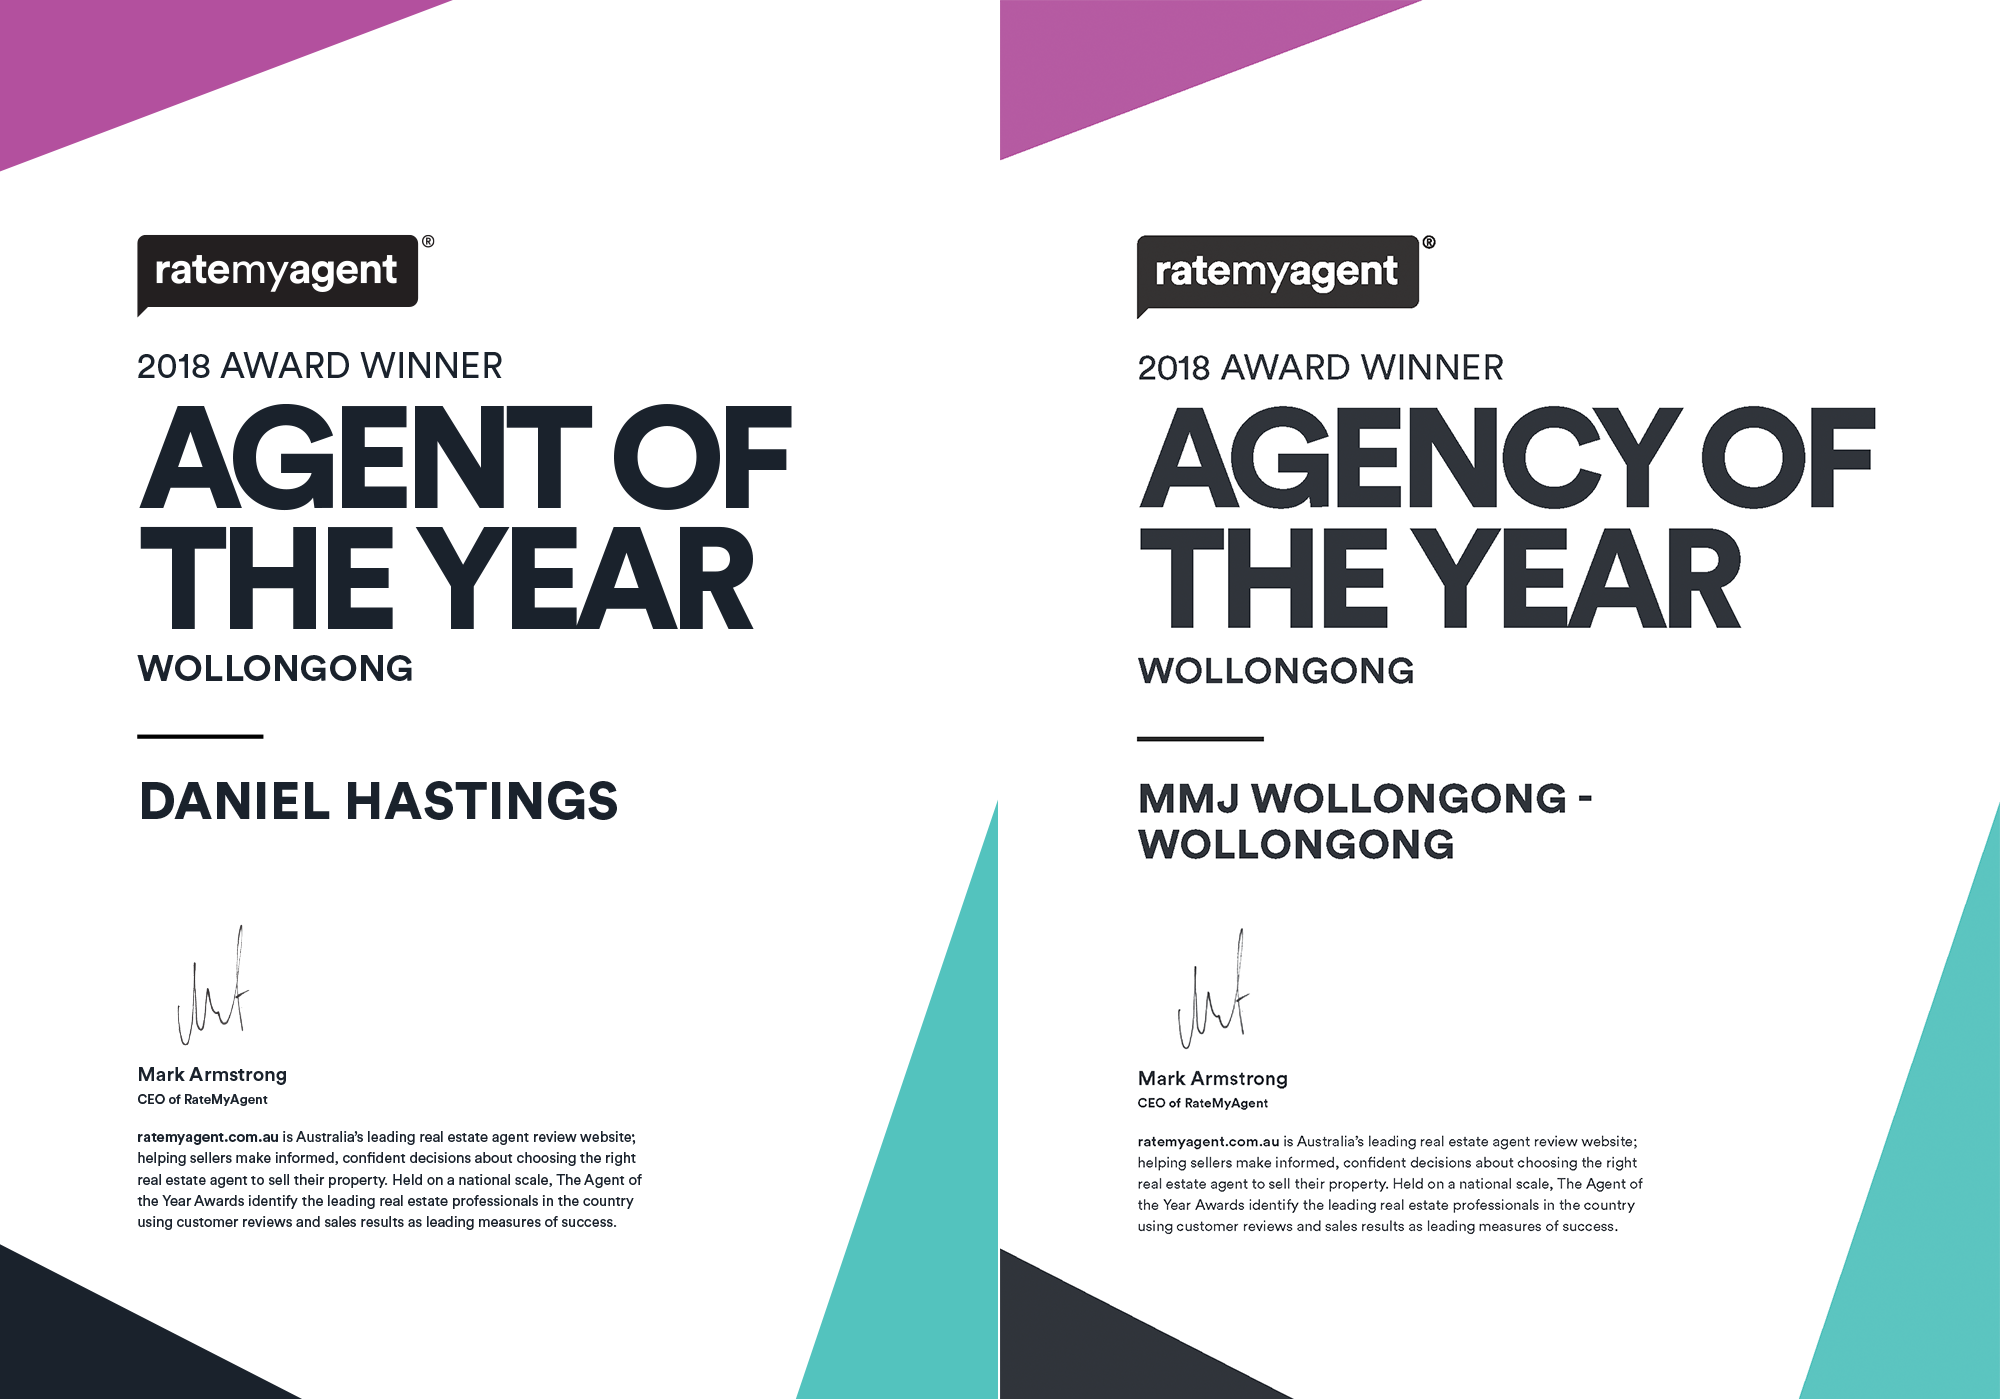 MMJ Awarded Agency of the Year for the second consecutive year.